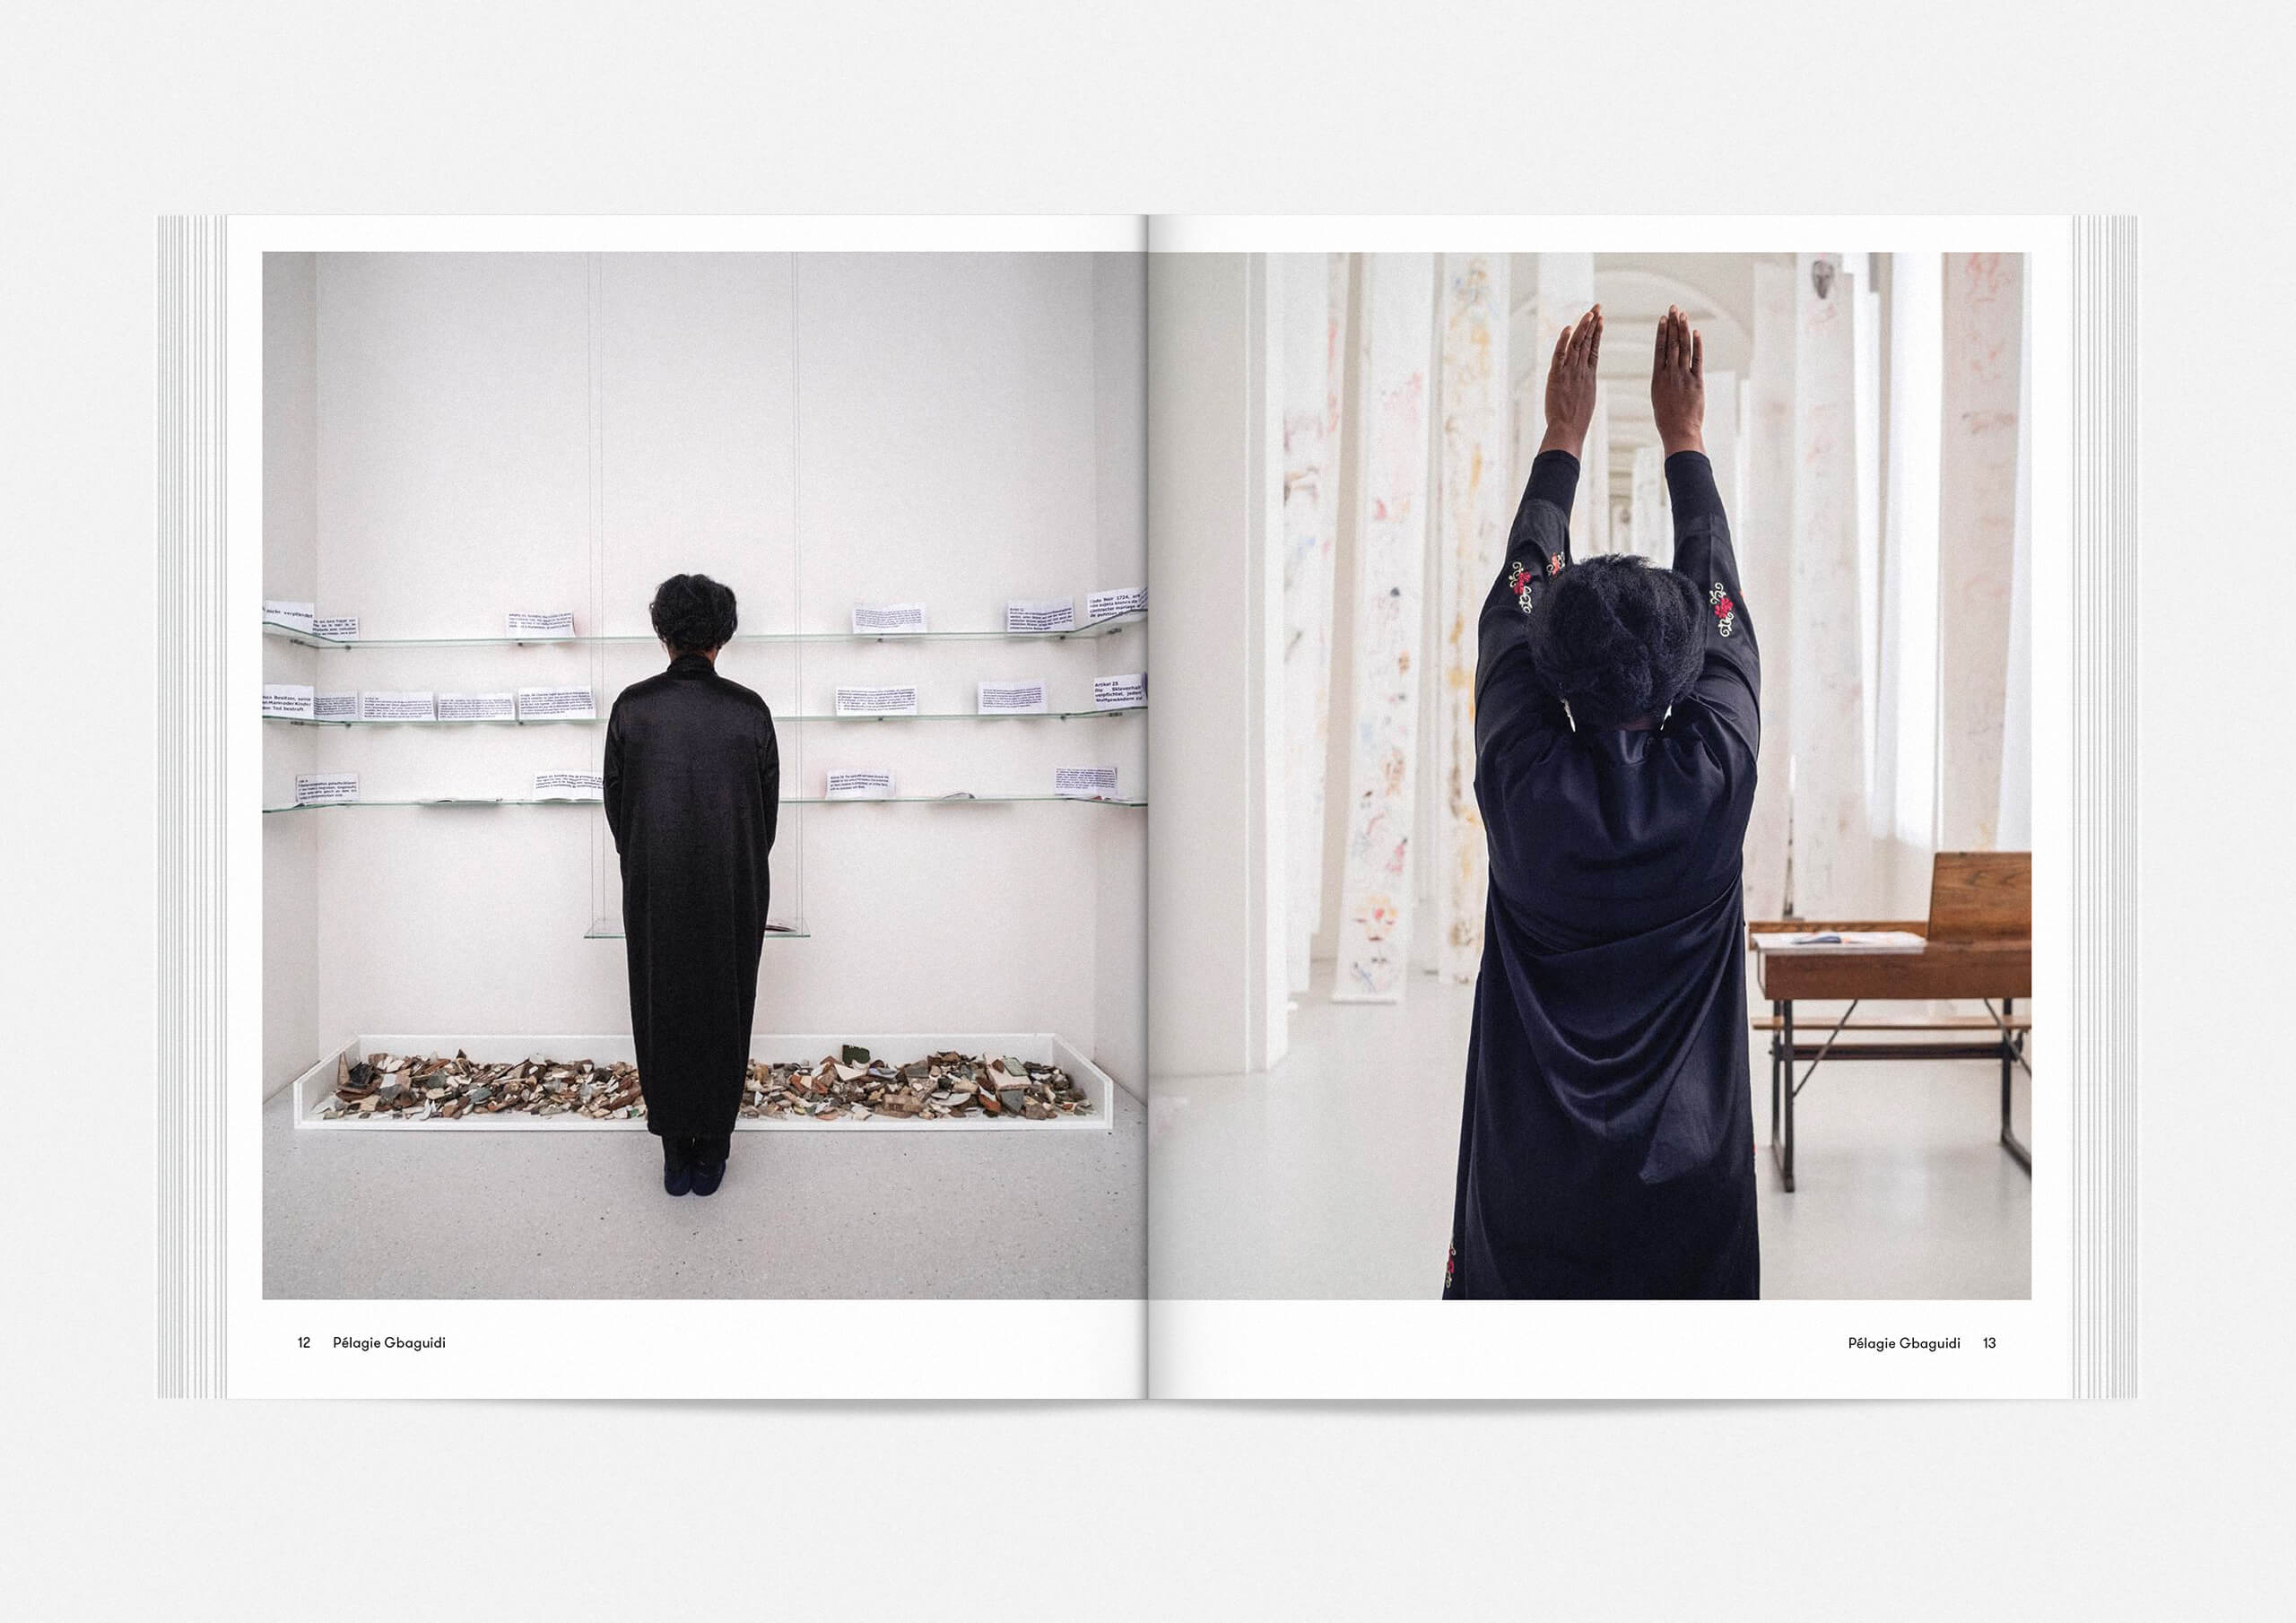 https://neuegestaltung.de/media/pages/clients/protocollum-issue-no-05/3b7bc944fe-1597415142/protocollum-5-page-1213-ng.jpg